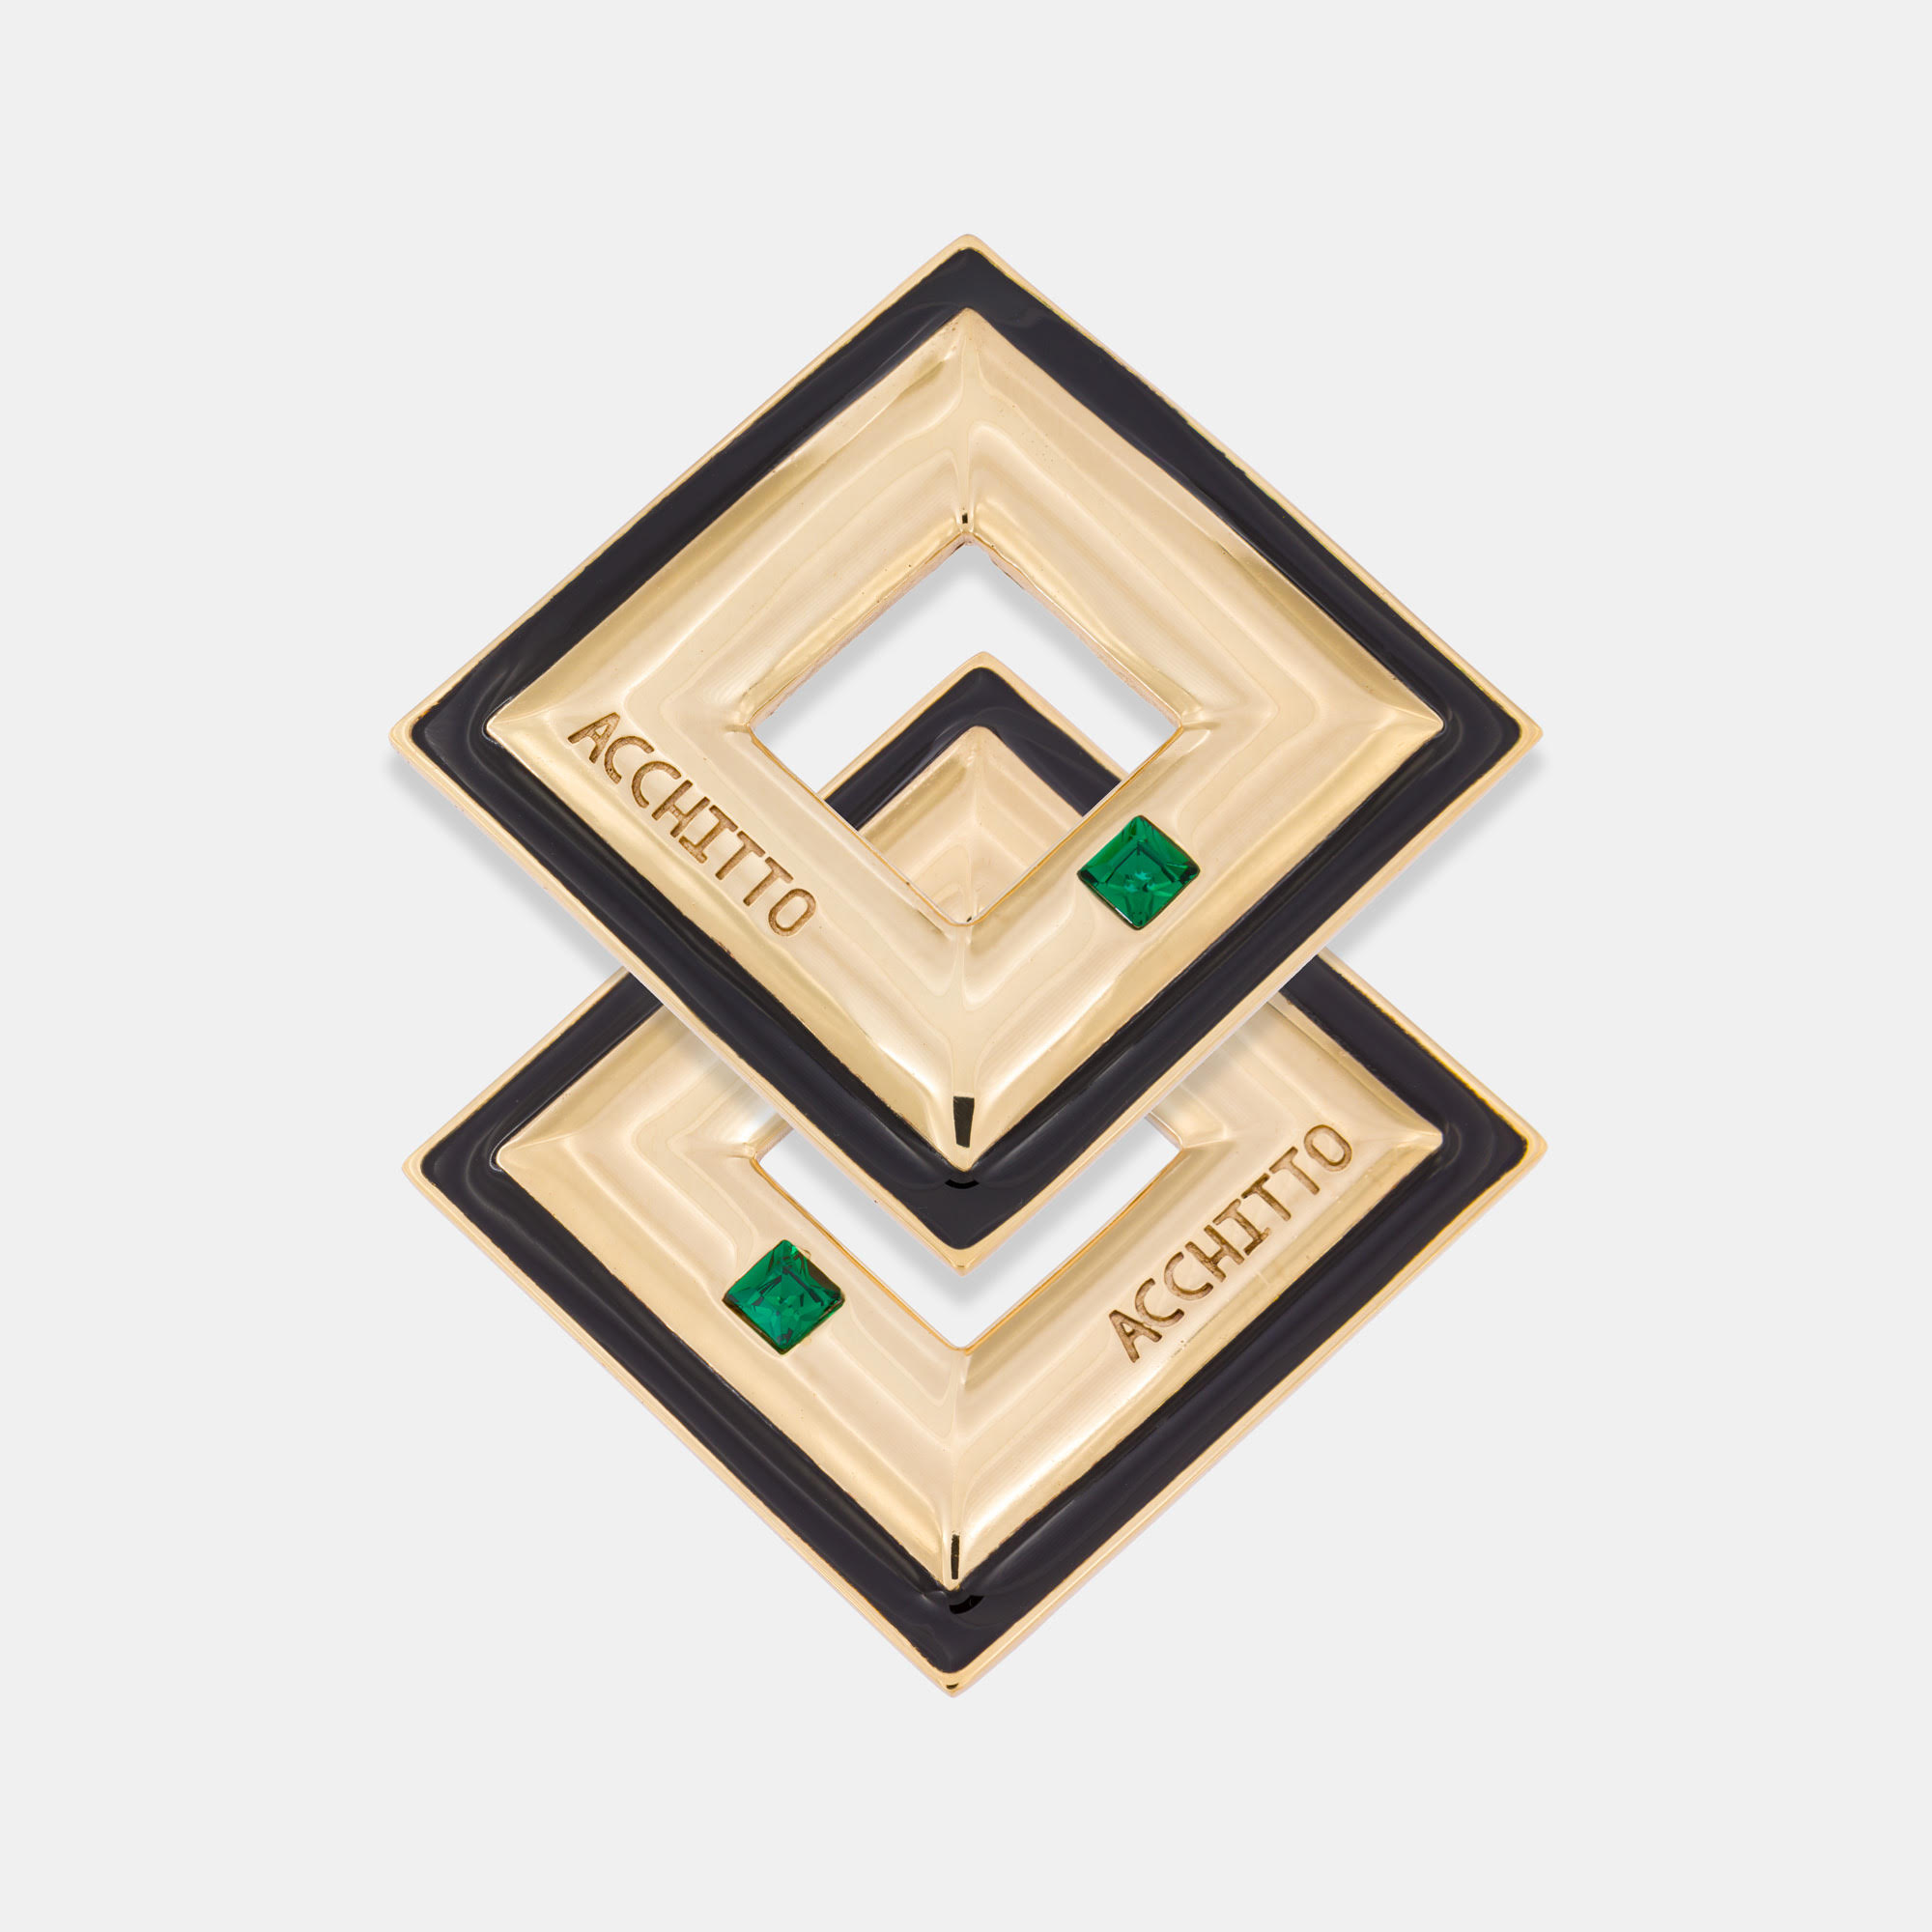 AEQUOR SQUARE EARRINGS by Acchitto on curated-crowd.com